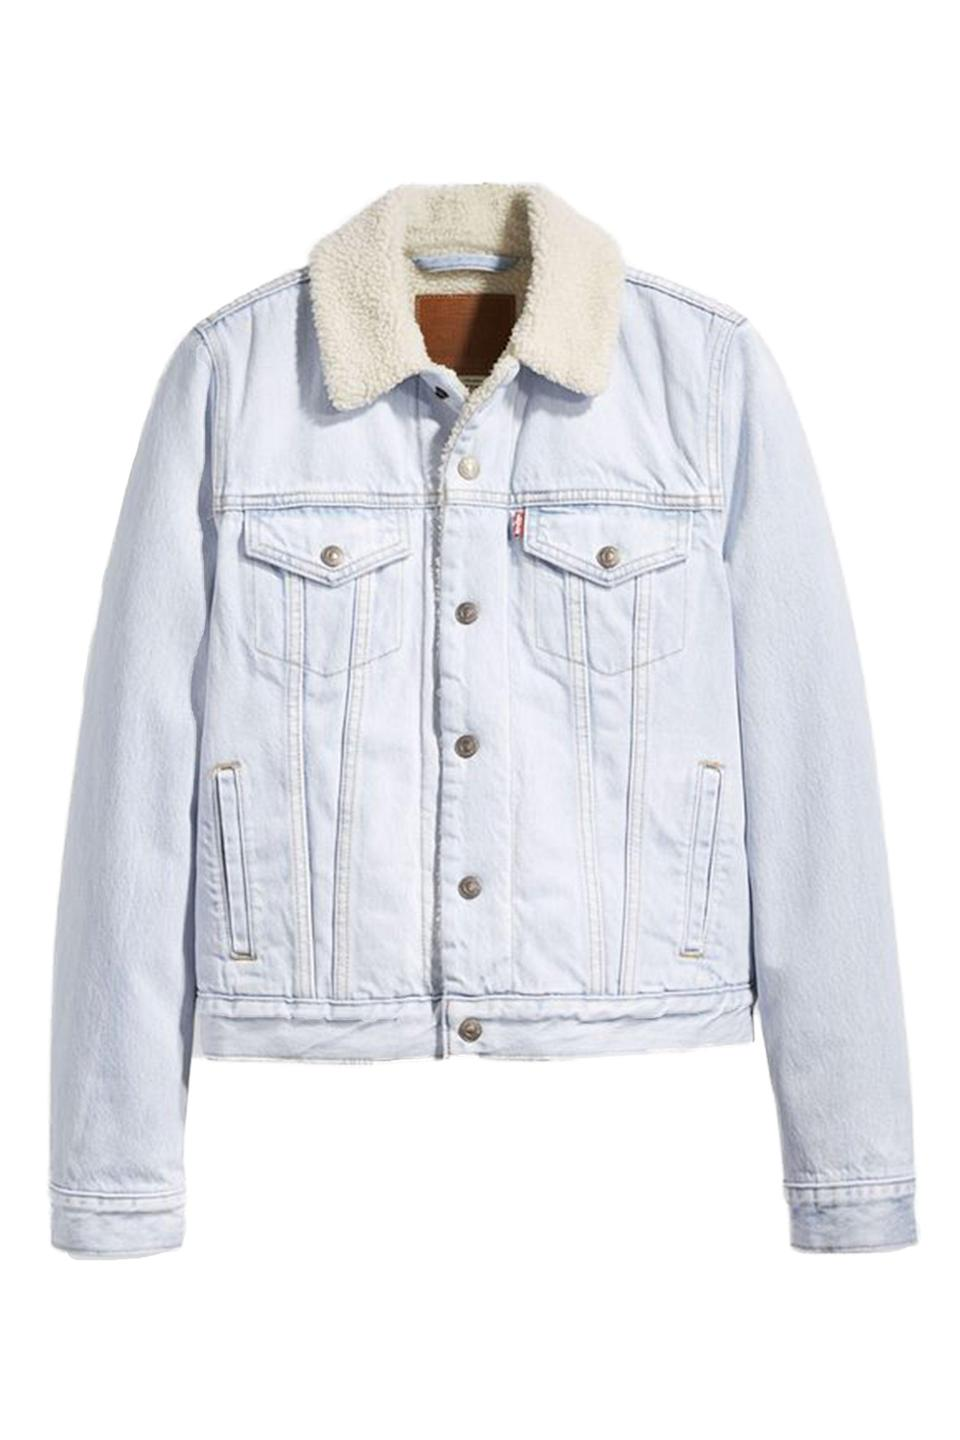 """<p><strong>Levi's</strong></p><p>amazon.com</p><p><strong>$58.80</strong></p><p><a href=""""https://www.amazon.com/dp/B081YW2Z17?tag=syn-yahoo-20&ascsubtag=%5Bartid%7C10051.g.13053688%5Bsrc%7Cyahoo-us"""" rel=""""nofollow noopener"""" target=""""_blank"""" data-ylk=""""slk:Shop Now"""" class=""""link rapid-noclick-resp"""">Shop Now</a></p><p>Levi's sherpa jackets have been worn by every fashion girl from Gigi Hadid to Zendaya. The denim staple is not only a godsend for complicated transitional temps, but a cozy piece to throw on at home.</p>"""